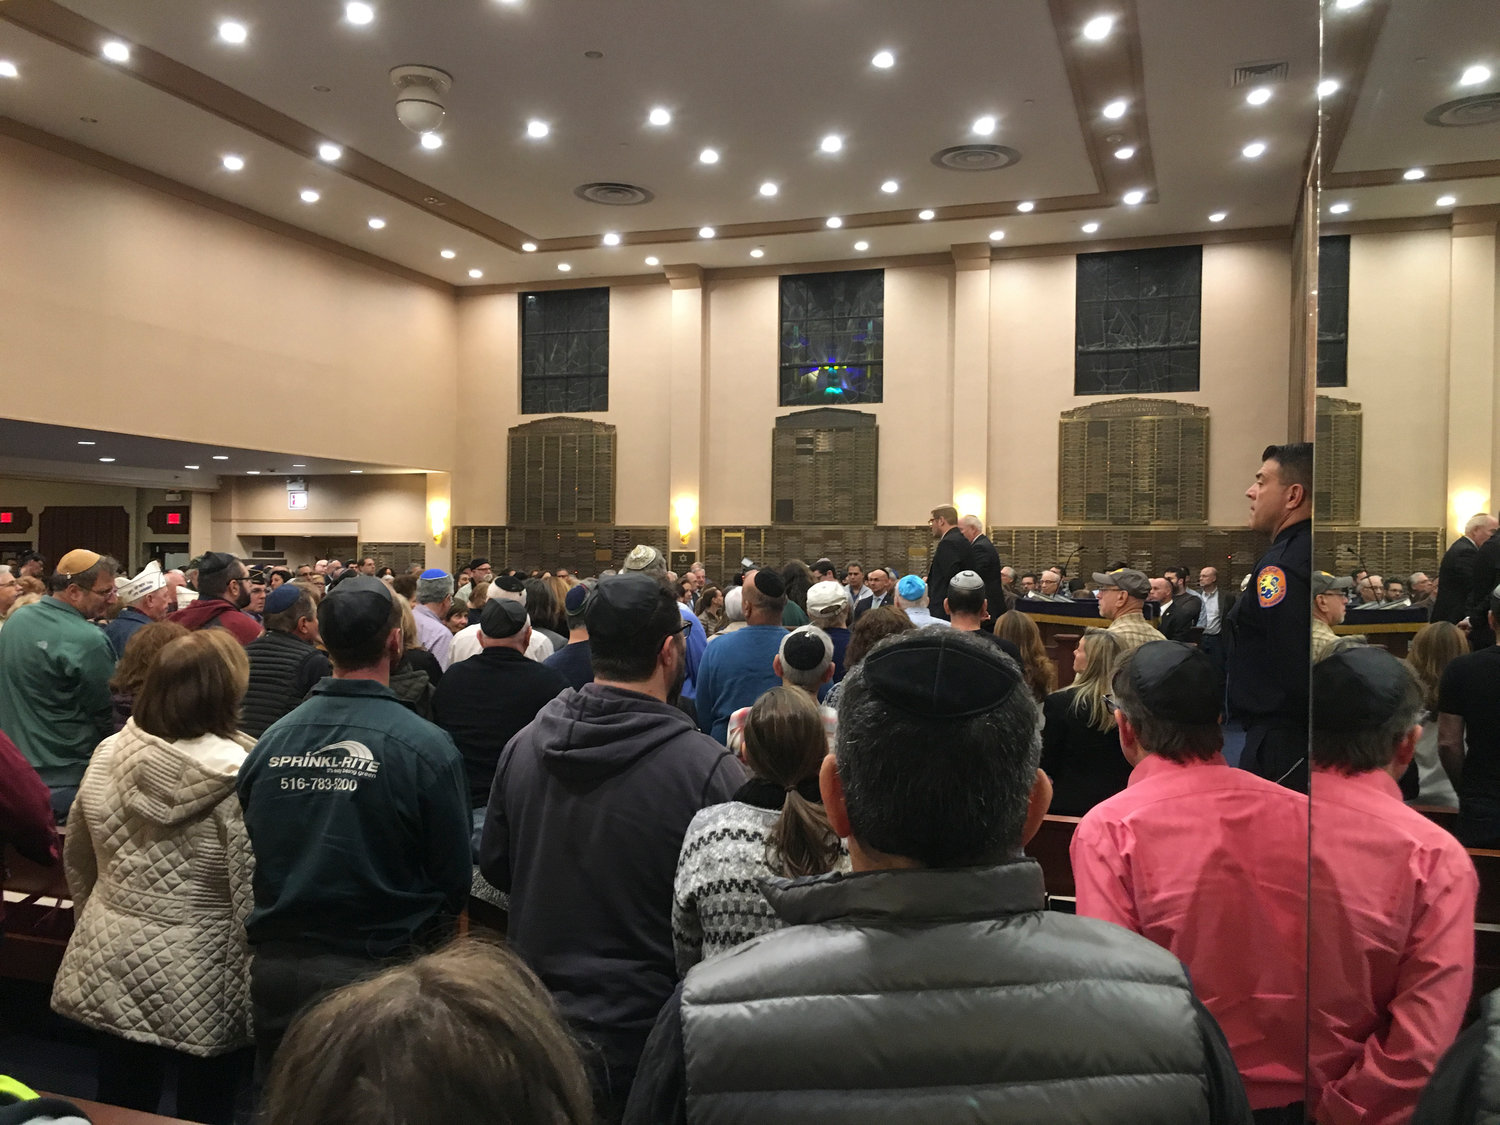 Hundreds of South Shore residents of all faiths poured into the Merrick Jewish Centre on Monday night to mourn the victims of the Pittsburgh shooting.